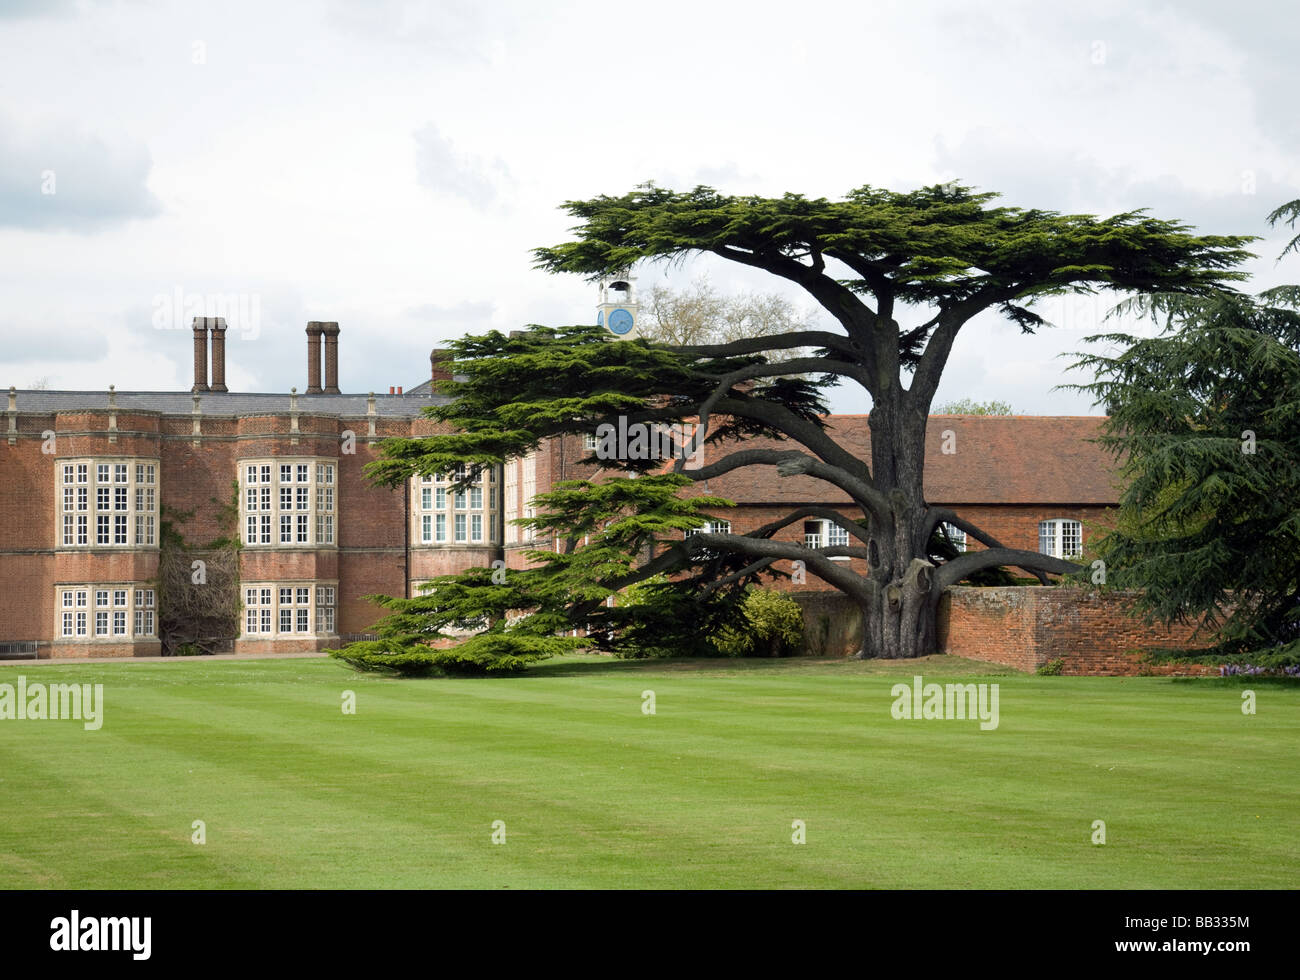 New Hall private girls school, Chelmsford, Essex, England - Stock Image